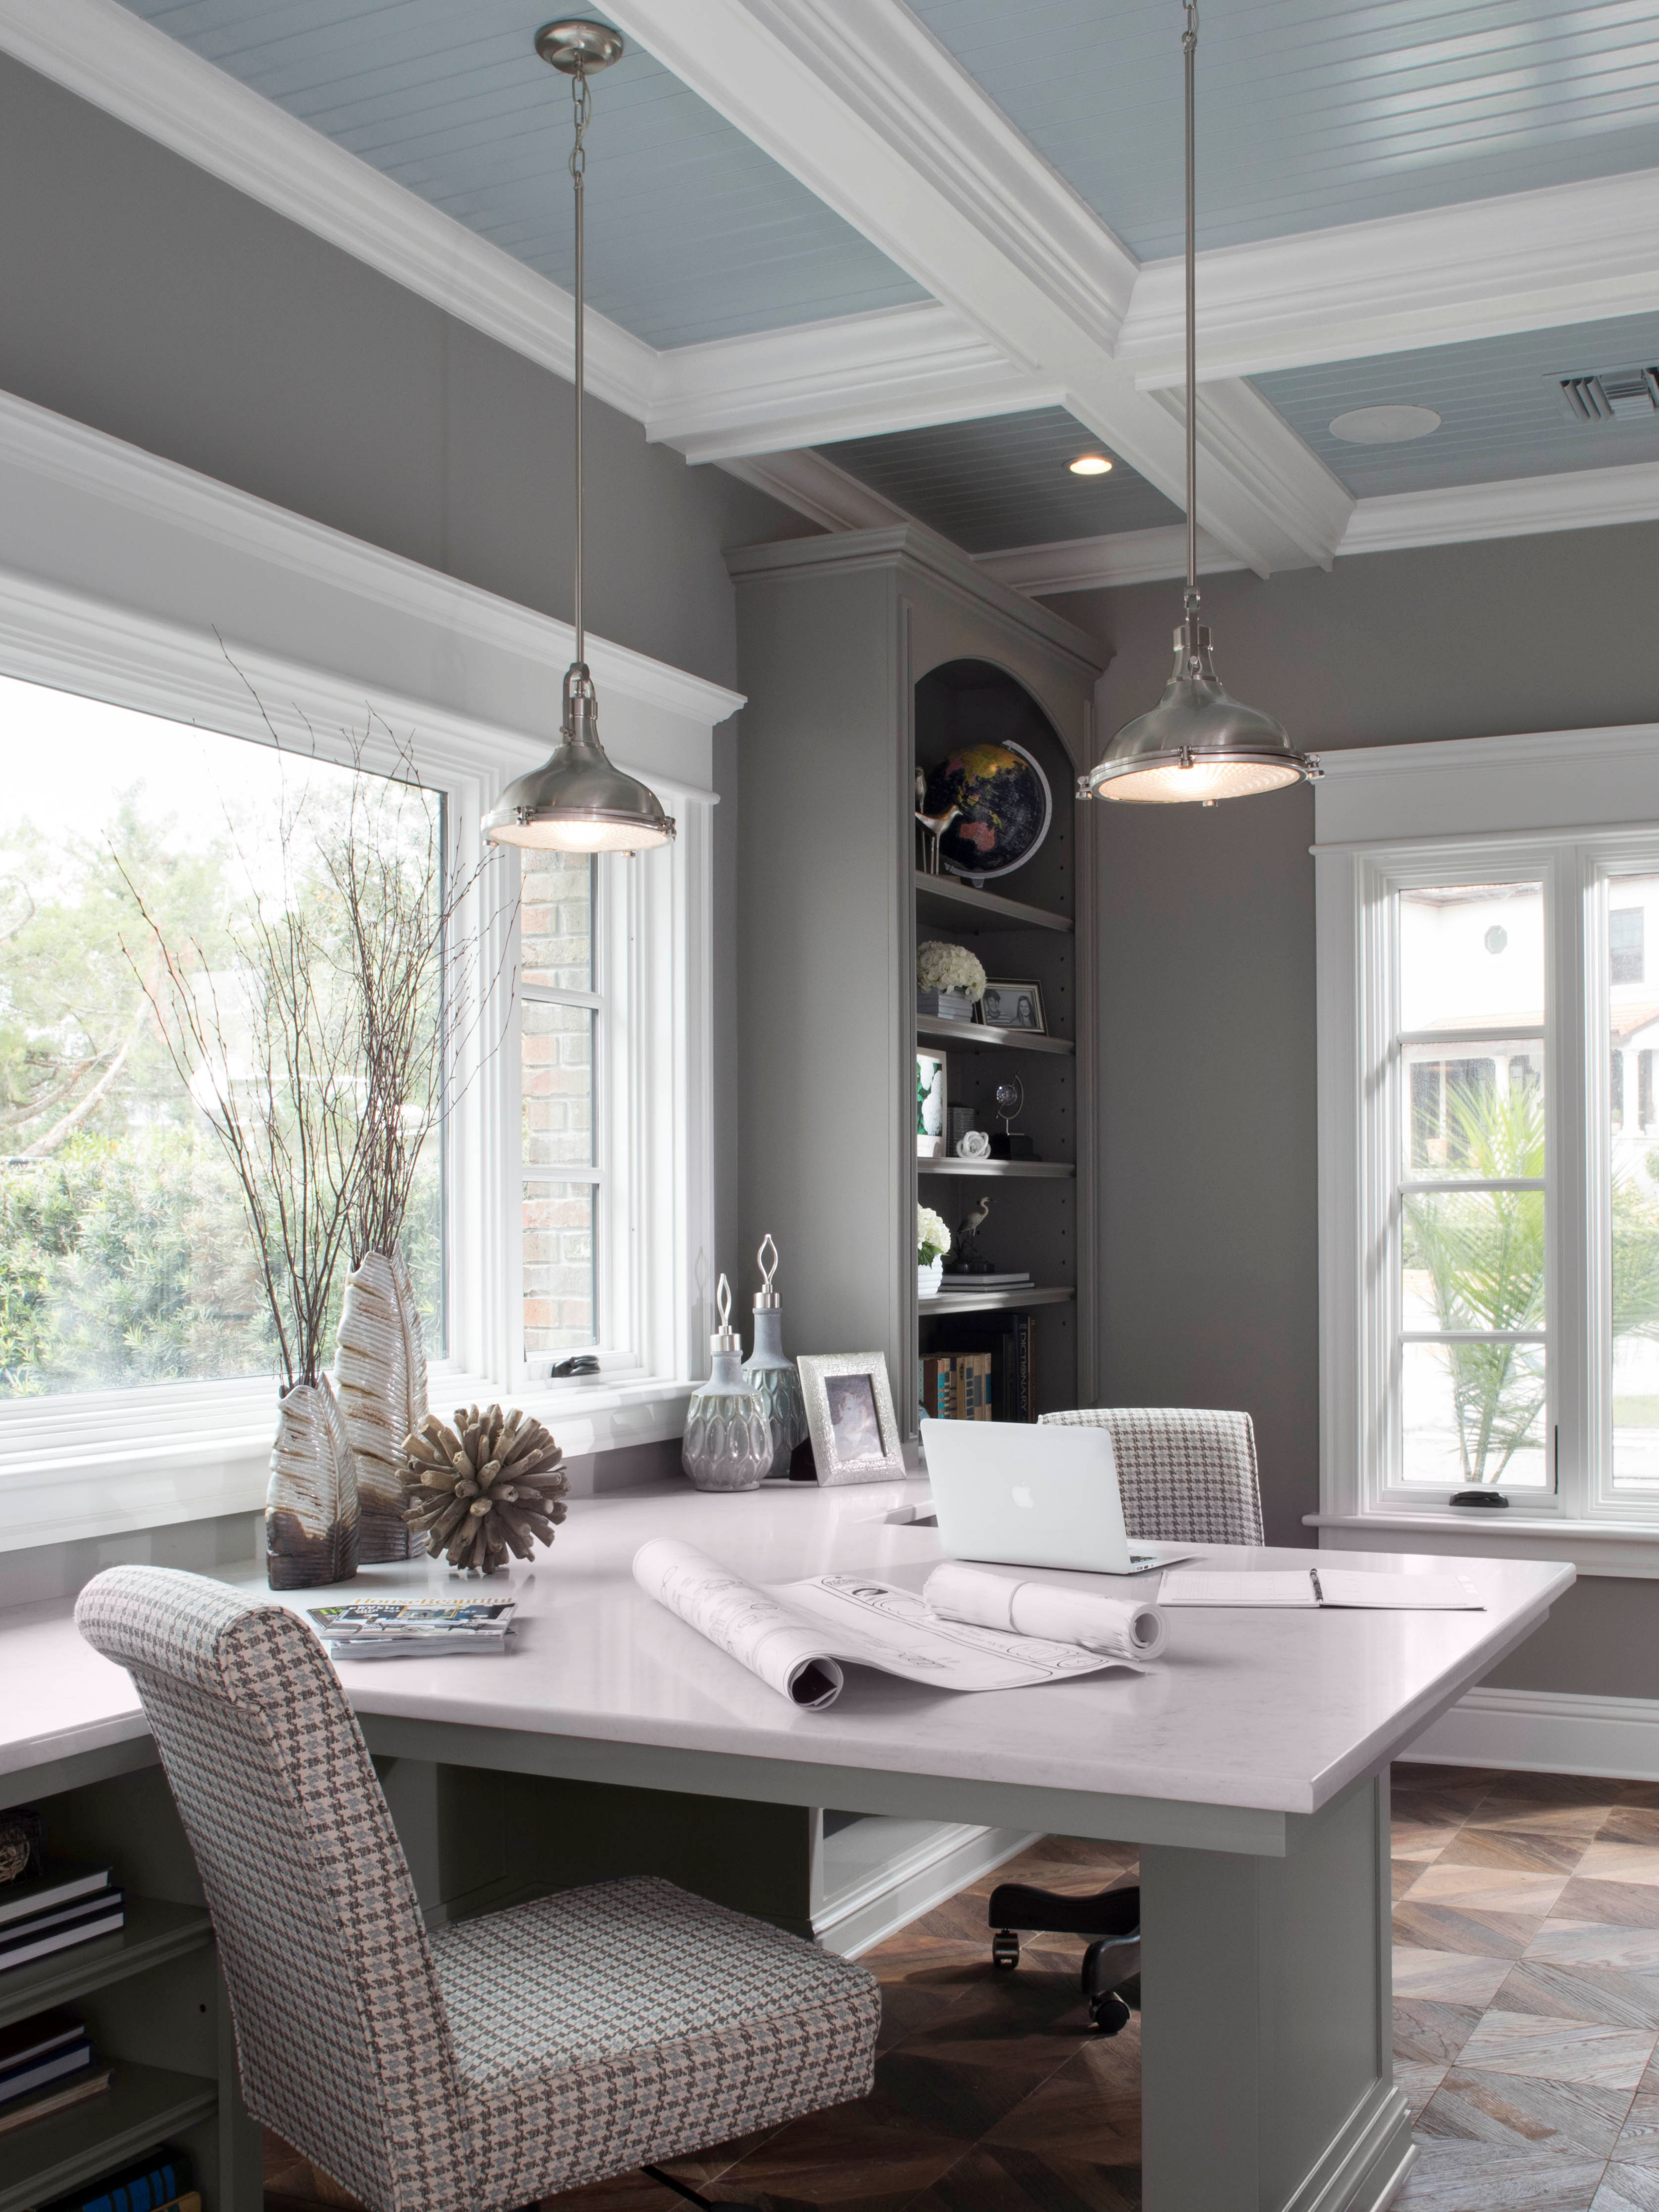 This Home Office Interior Design Project Incorporates Fresnel An Antique Style Brushed Nic Office Interior